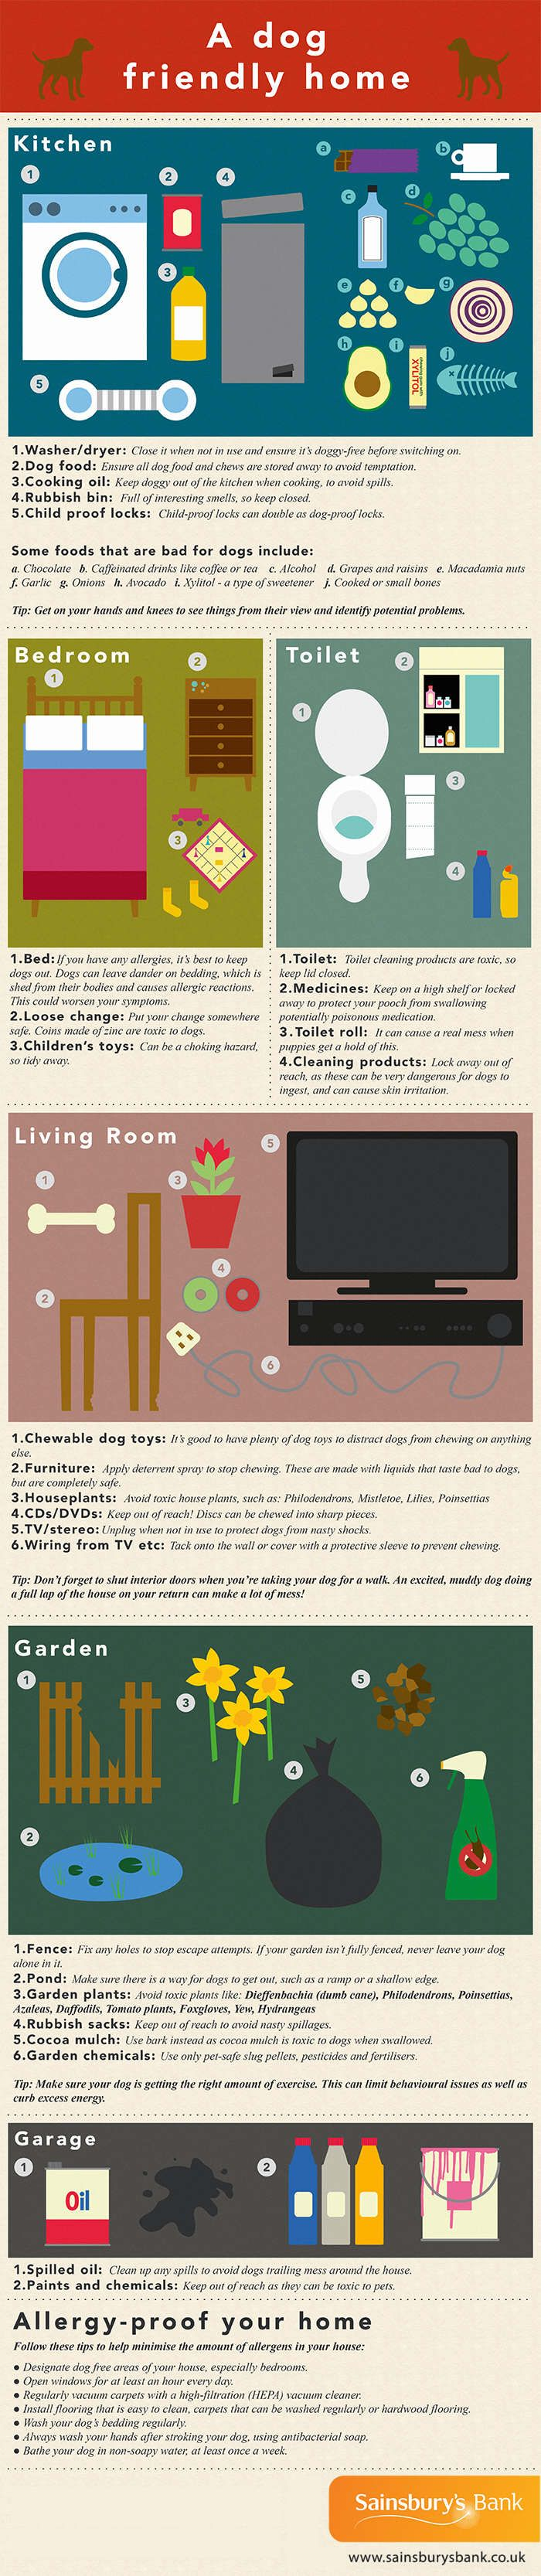 A dog friendly home infographic i find it a good idea to put yourself at dog eye level in each room and crawl around a bit